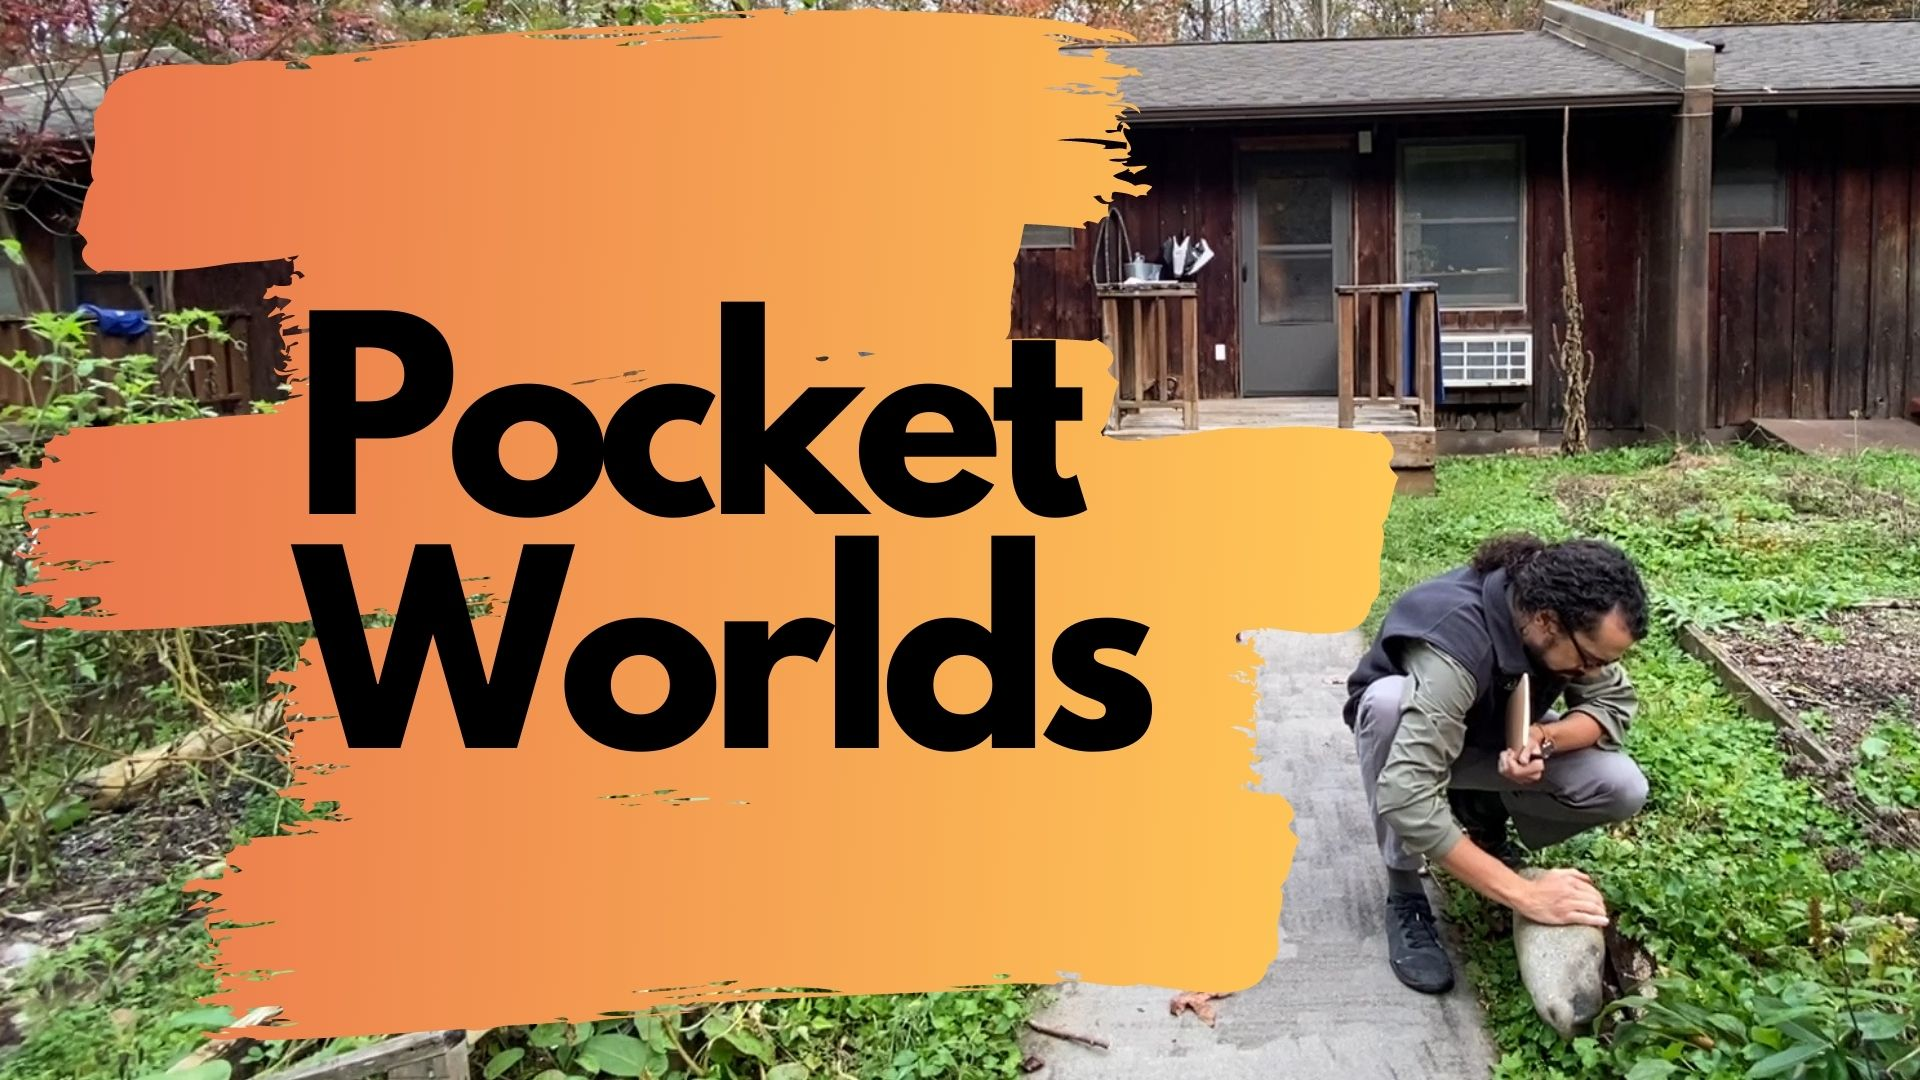 Weekly Wonder Season 1, Episode 5: Exploring Pocket Worlds